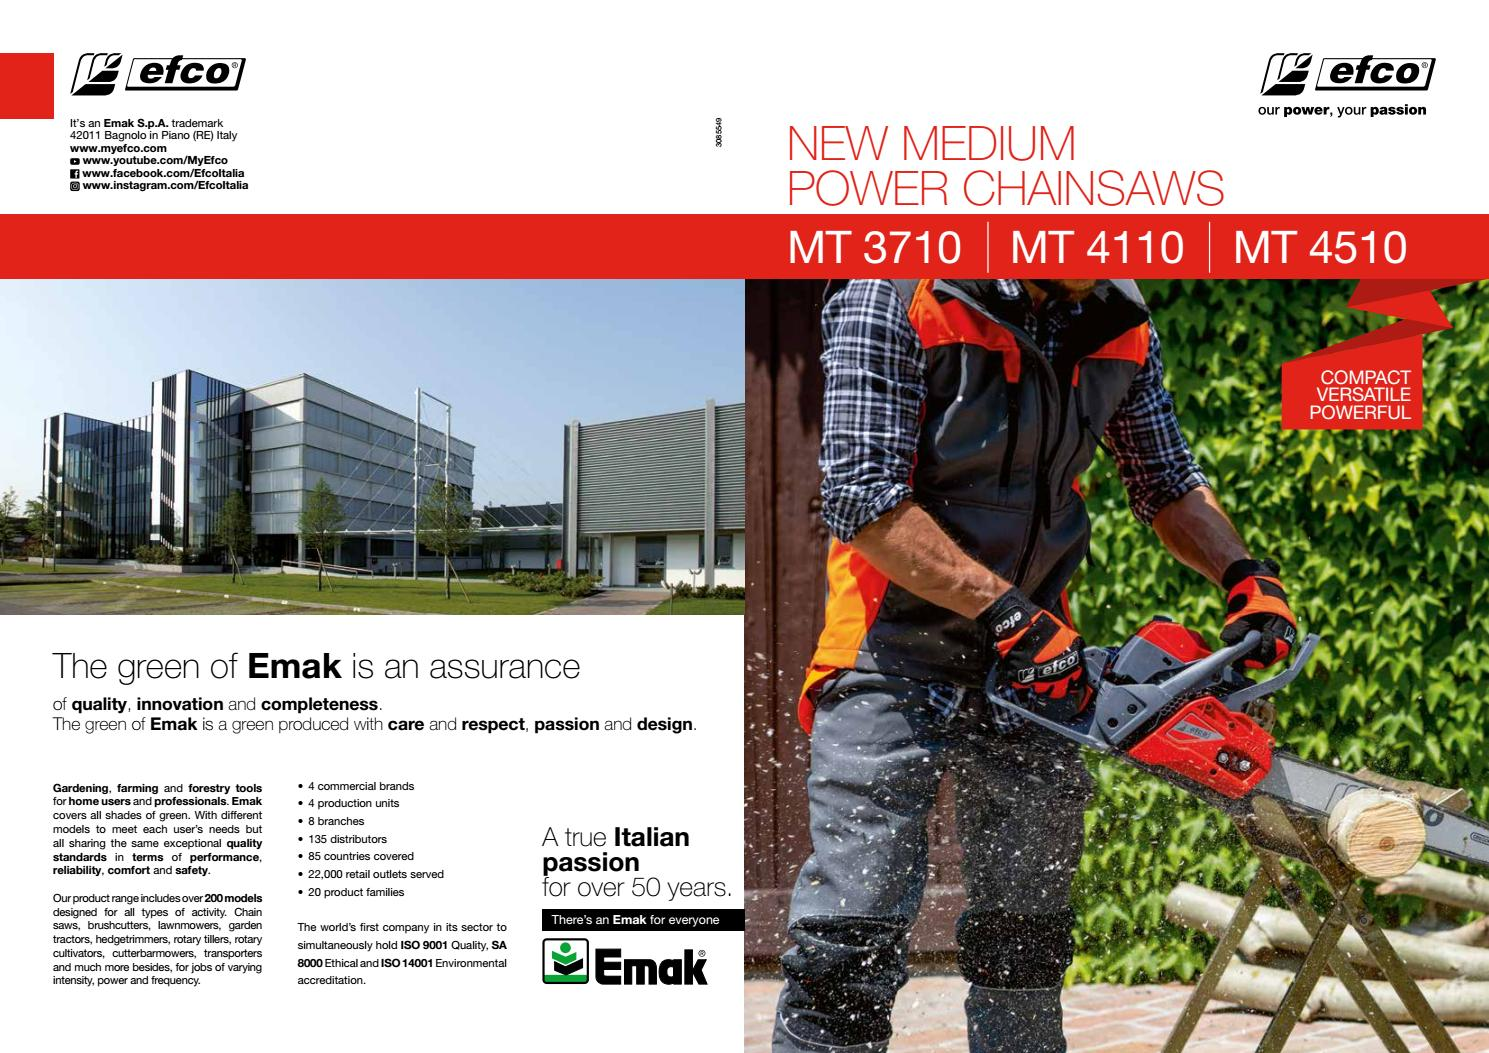 Efco MT 3710 - MT 4110 - MT 4510 new chainsaws by Emak Spa